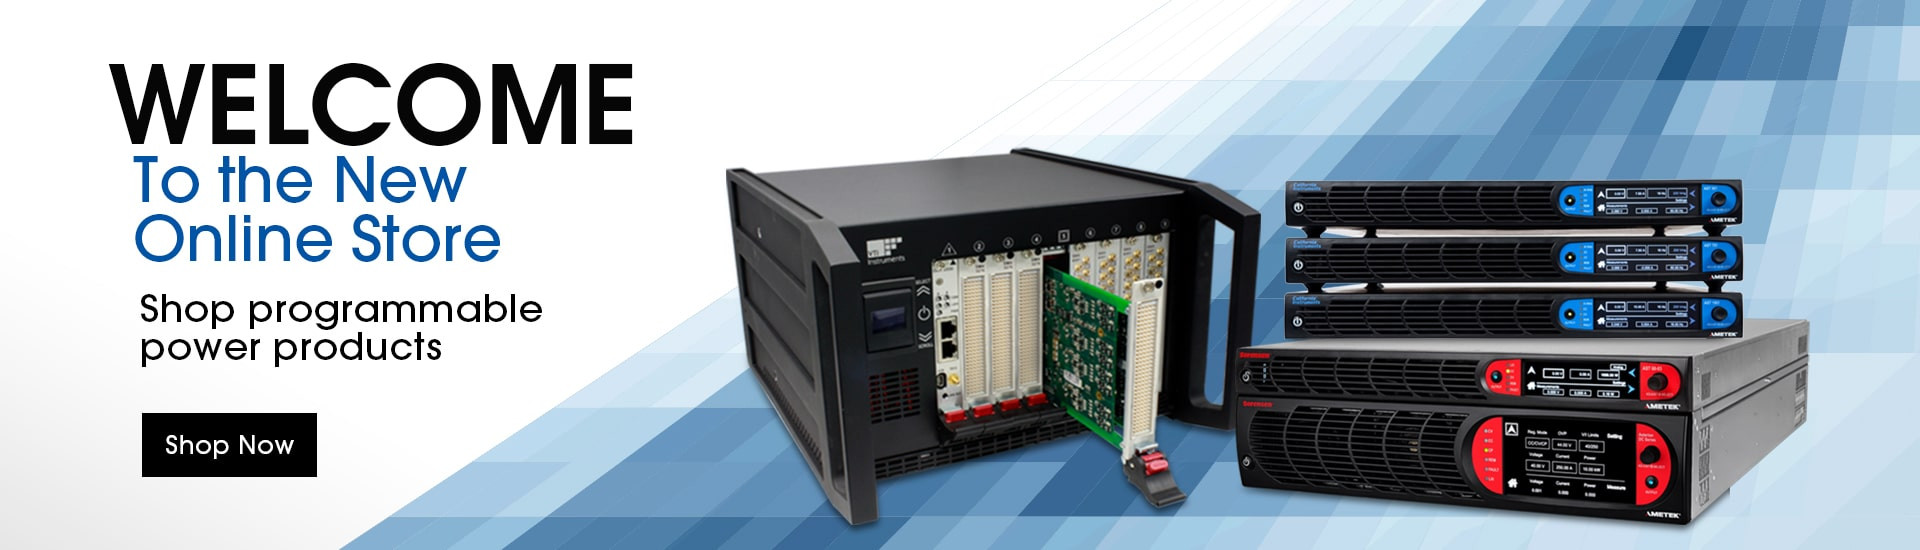 Welcome to AMETEK Programmable Power's New Online Store! Shop programmable power products now.